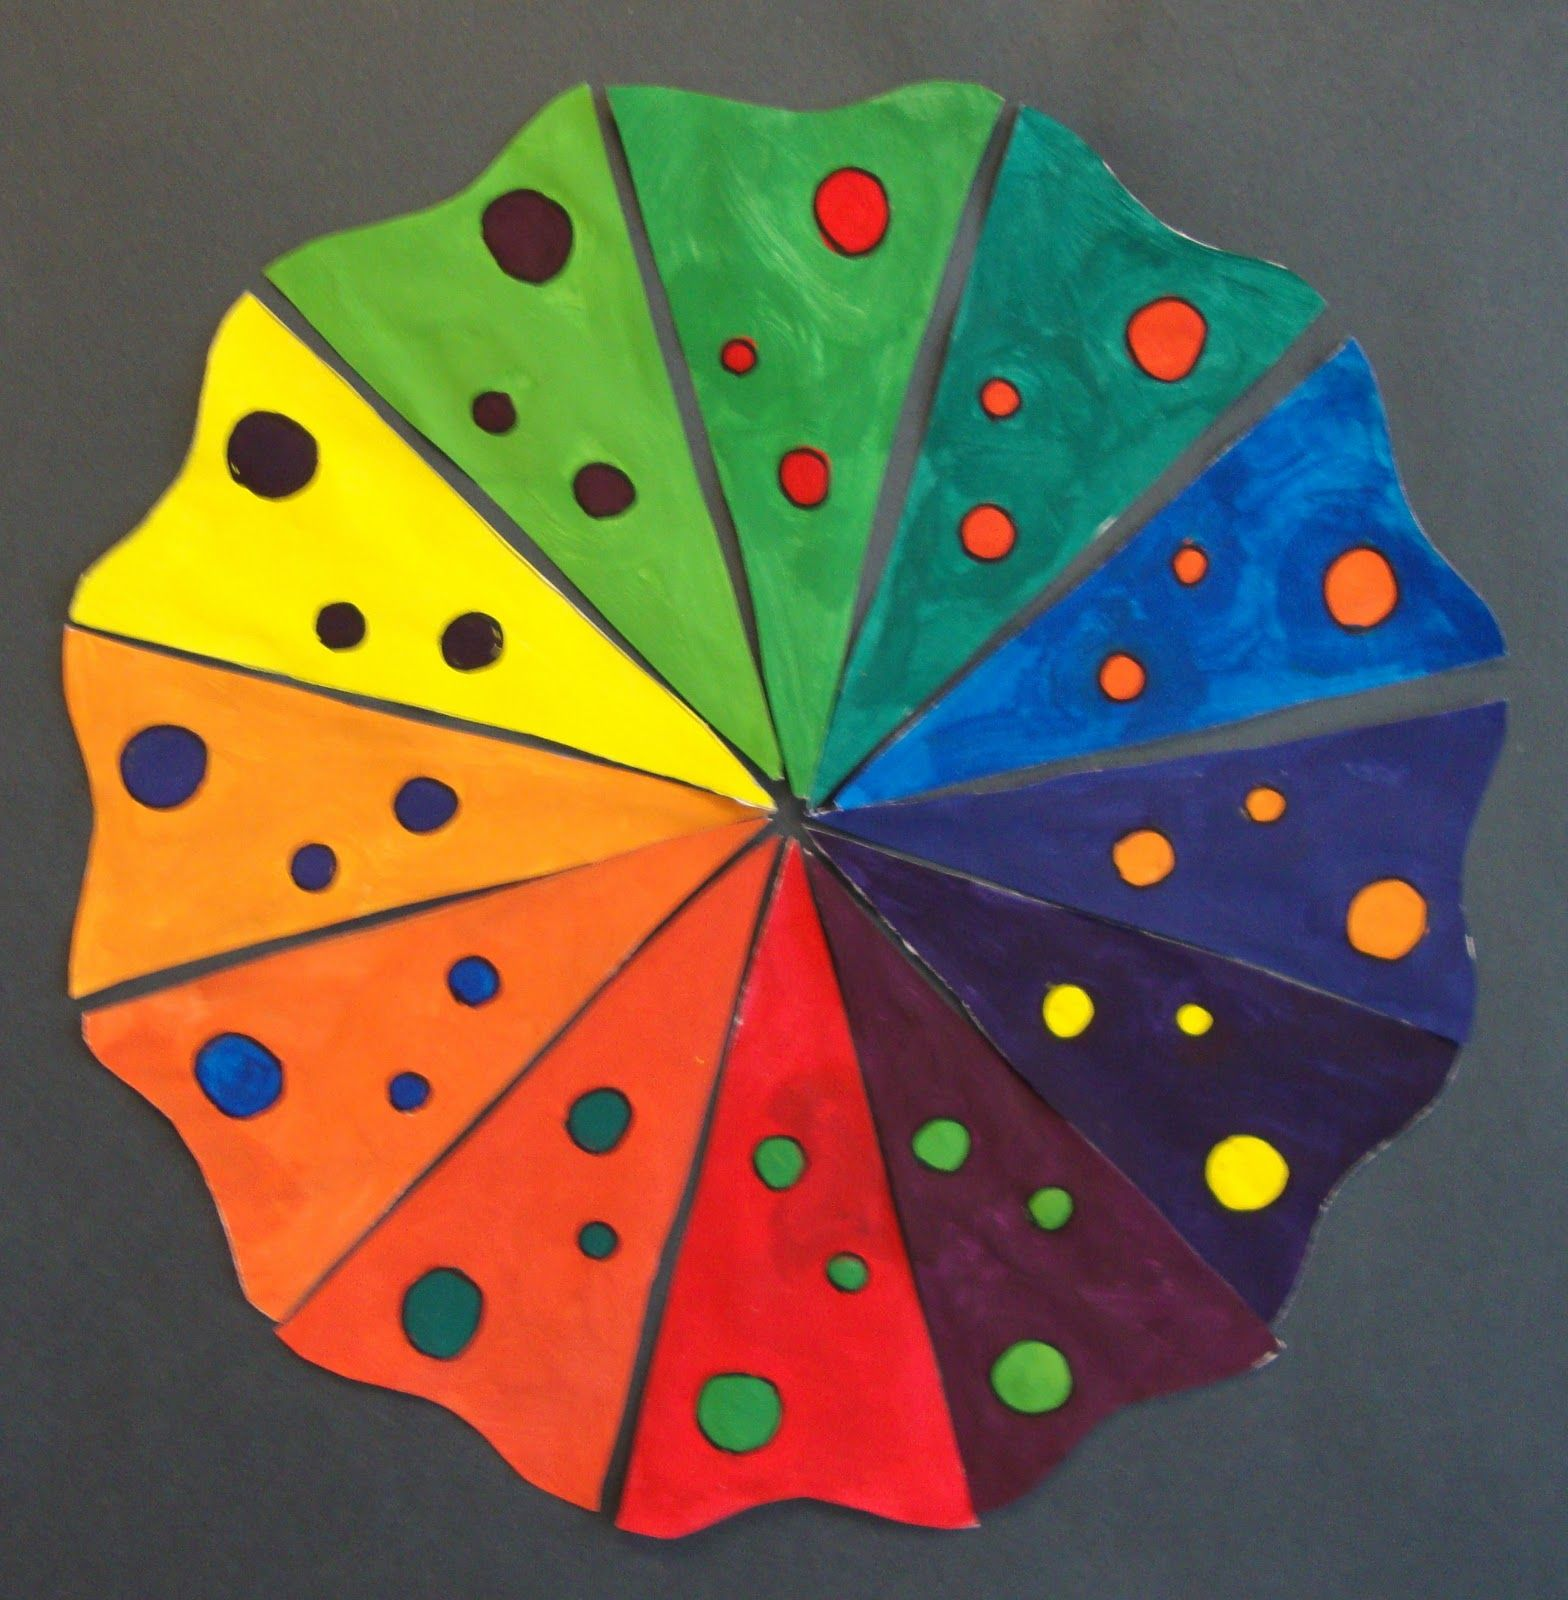 Art Paper Scissors Glue Creative Color Wheel Using The Complementary Colors